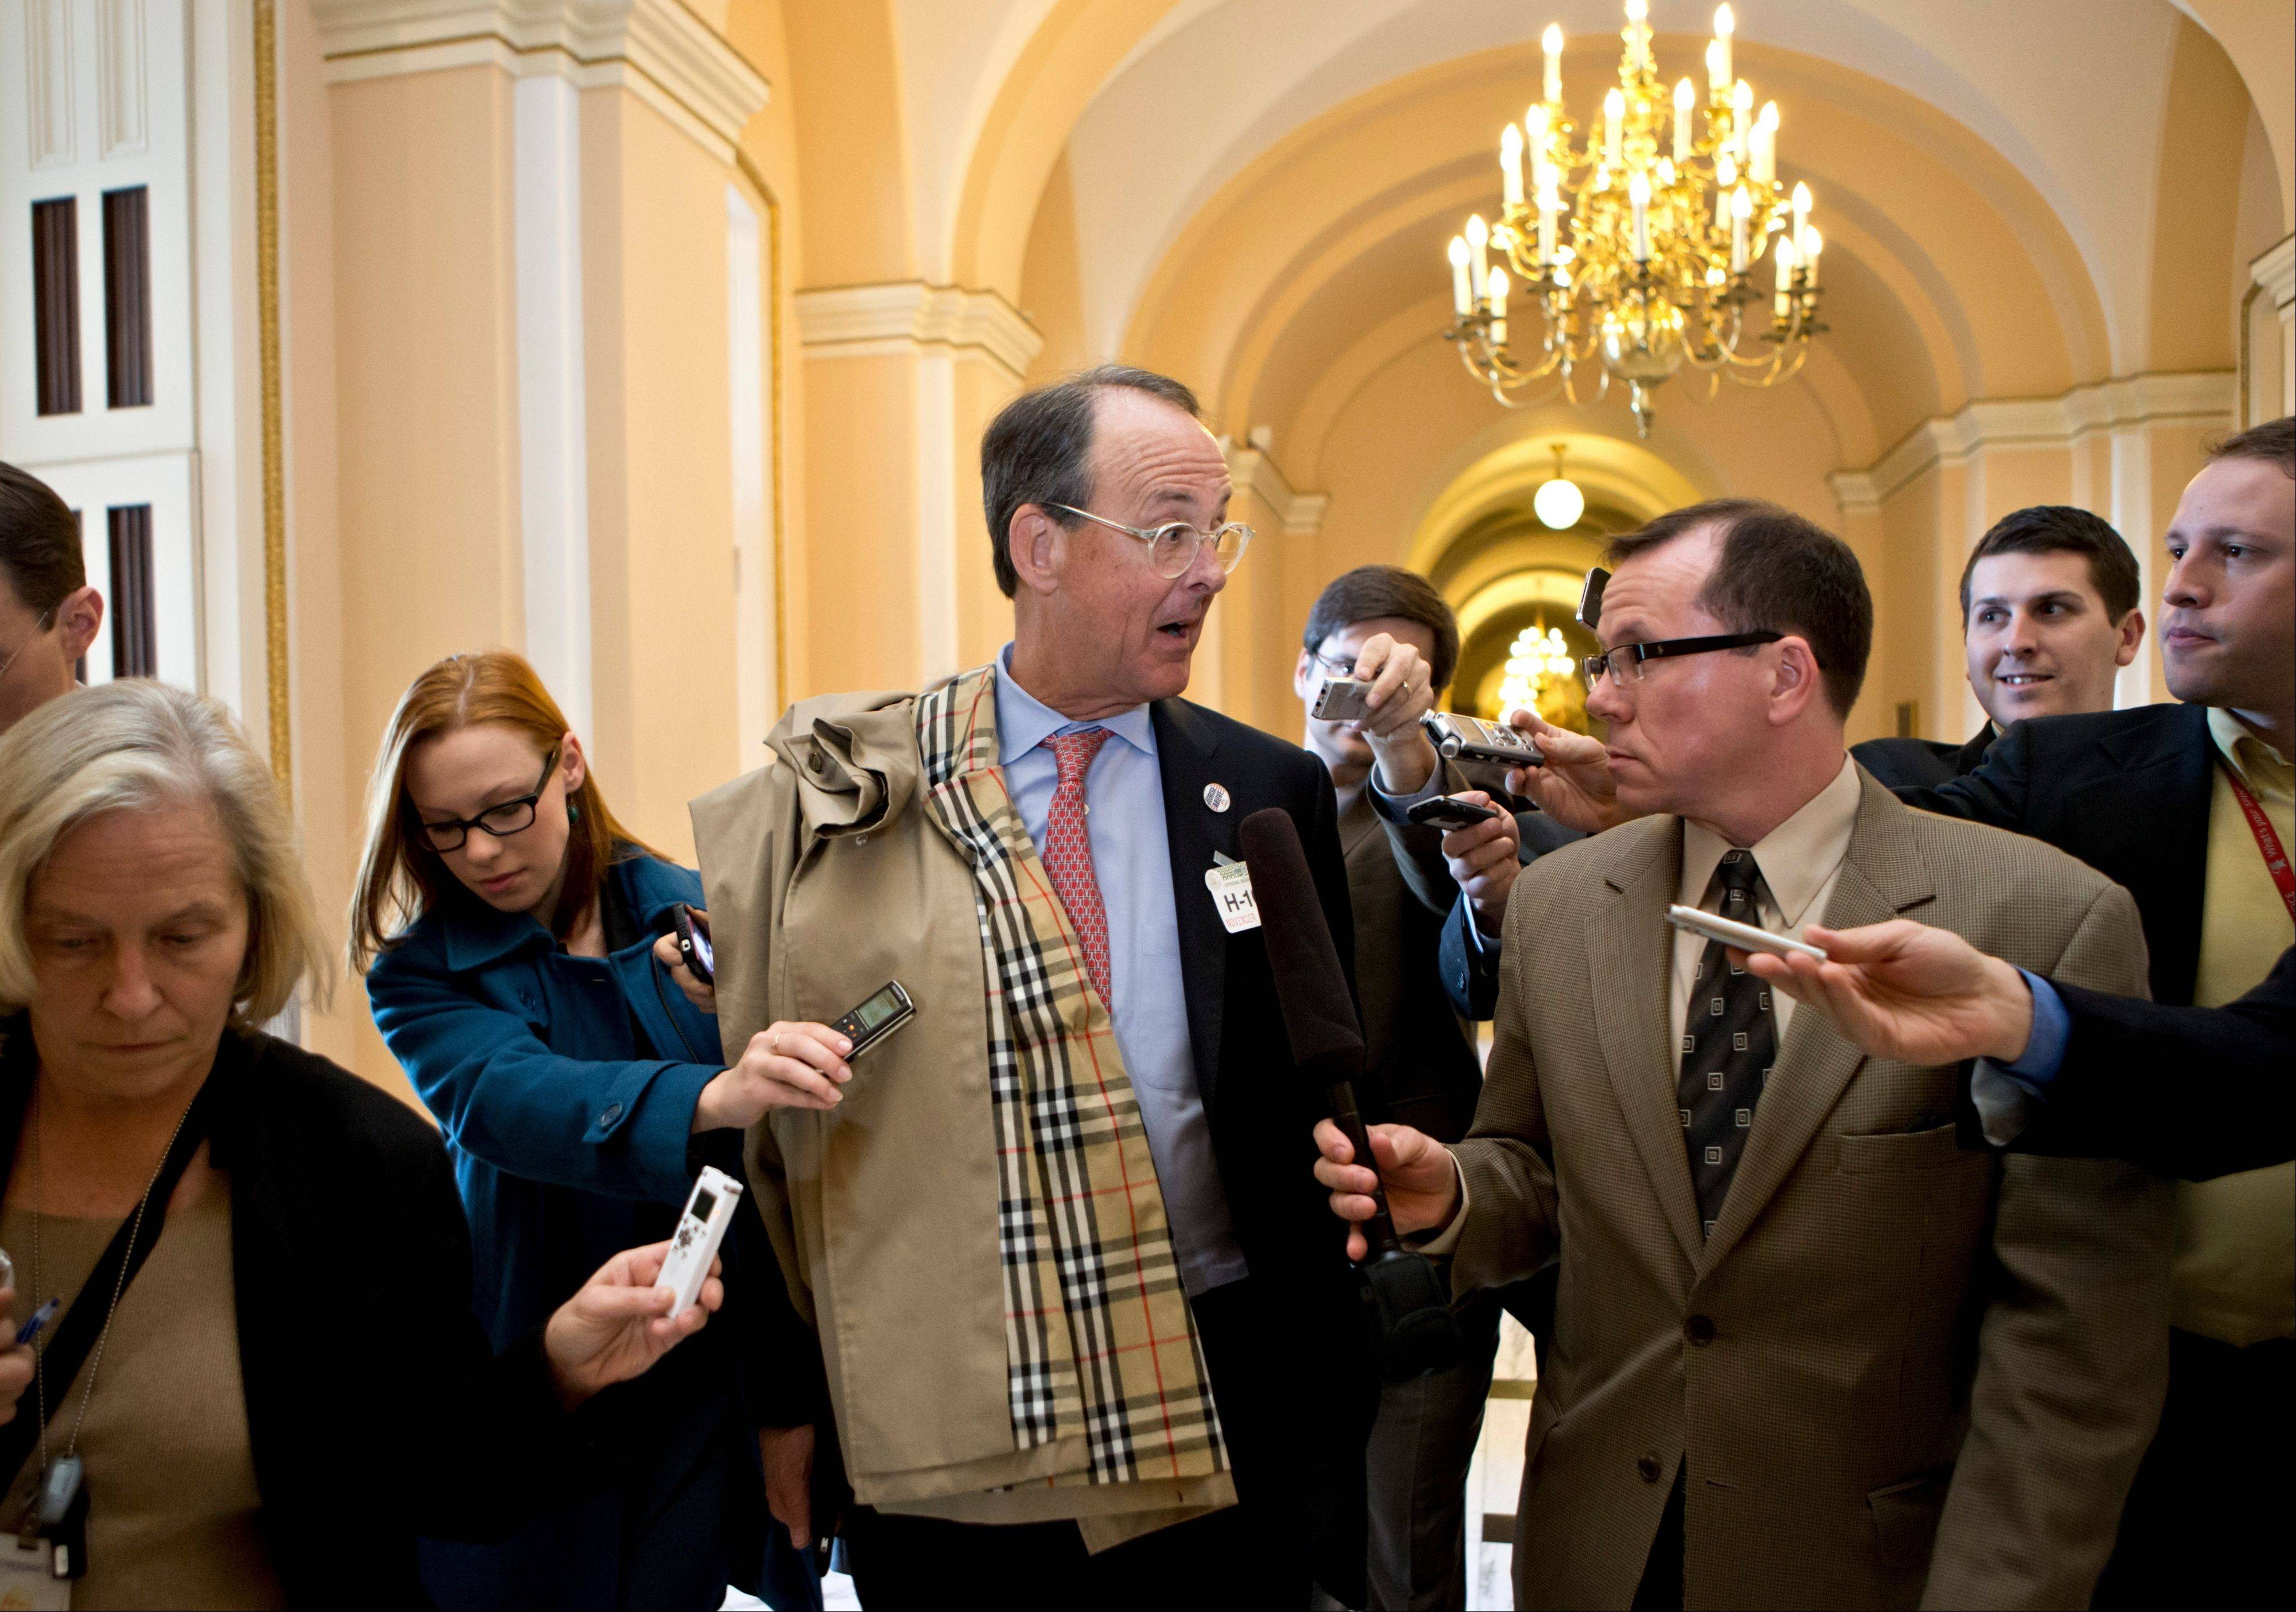 Former White House Chief of Staff Erskine Bowles, co-chair of the National Commission on Fiscal Responsibility and Reform, is pursued by reporters on Capitol Hill in Washington, Wednesday following a closed-door meeting House Speaker John Boehner of Ohio.